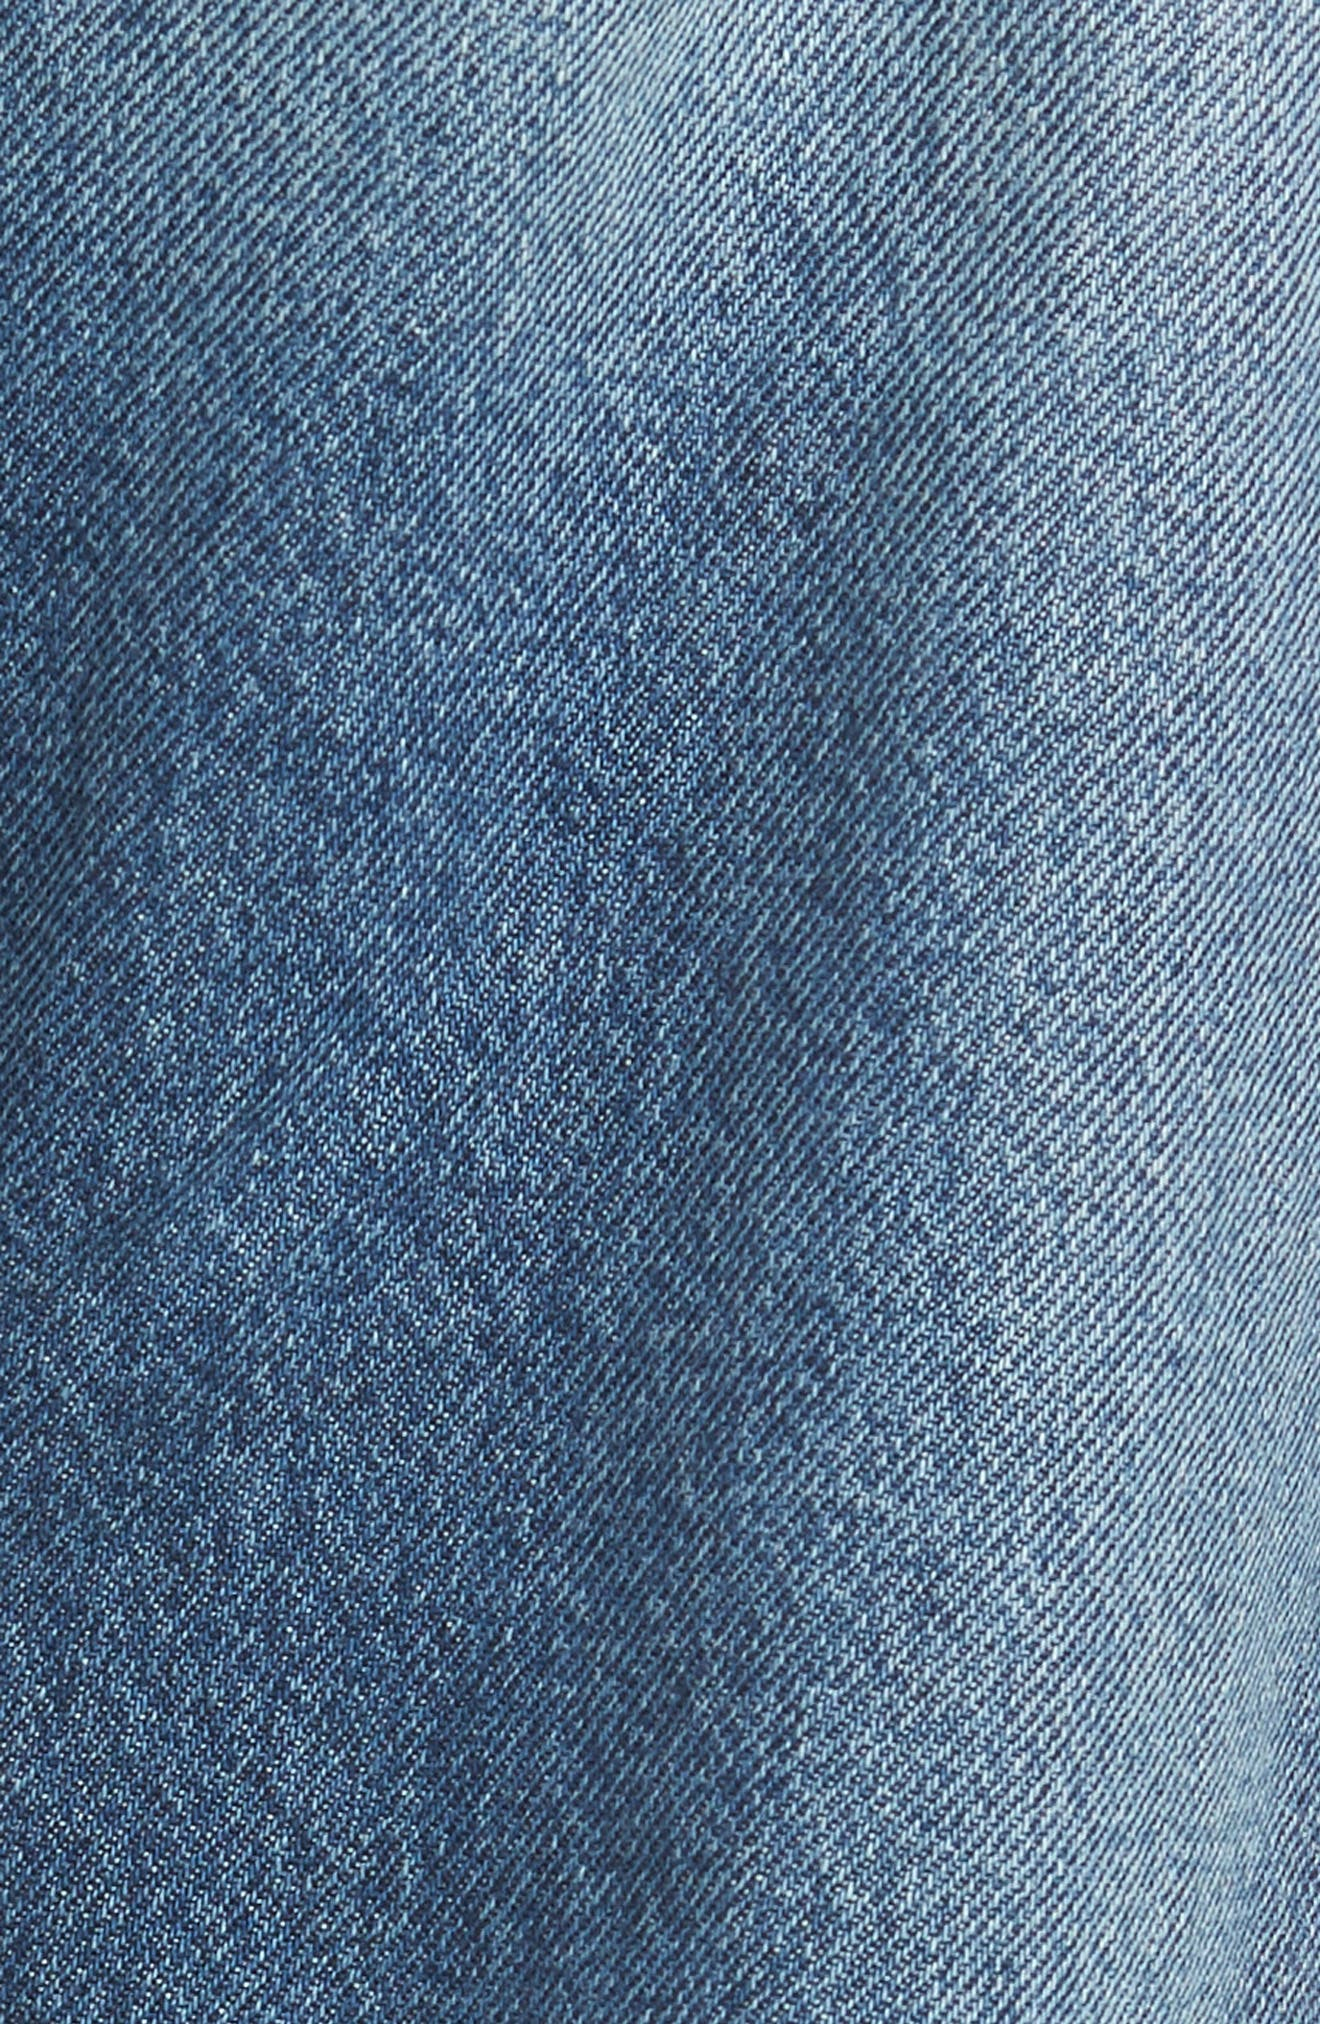 Calvin Klein Straight Leg Jeans,                             Alternate thumbnail 5, color,                             400